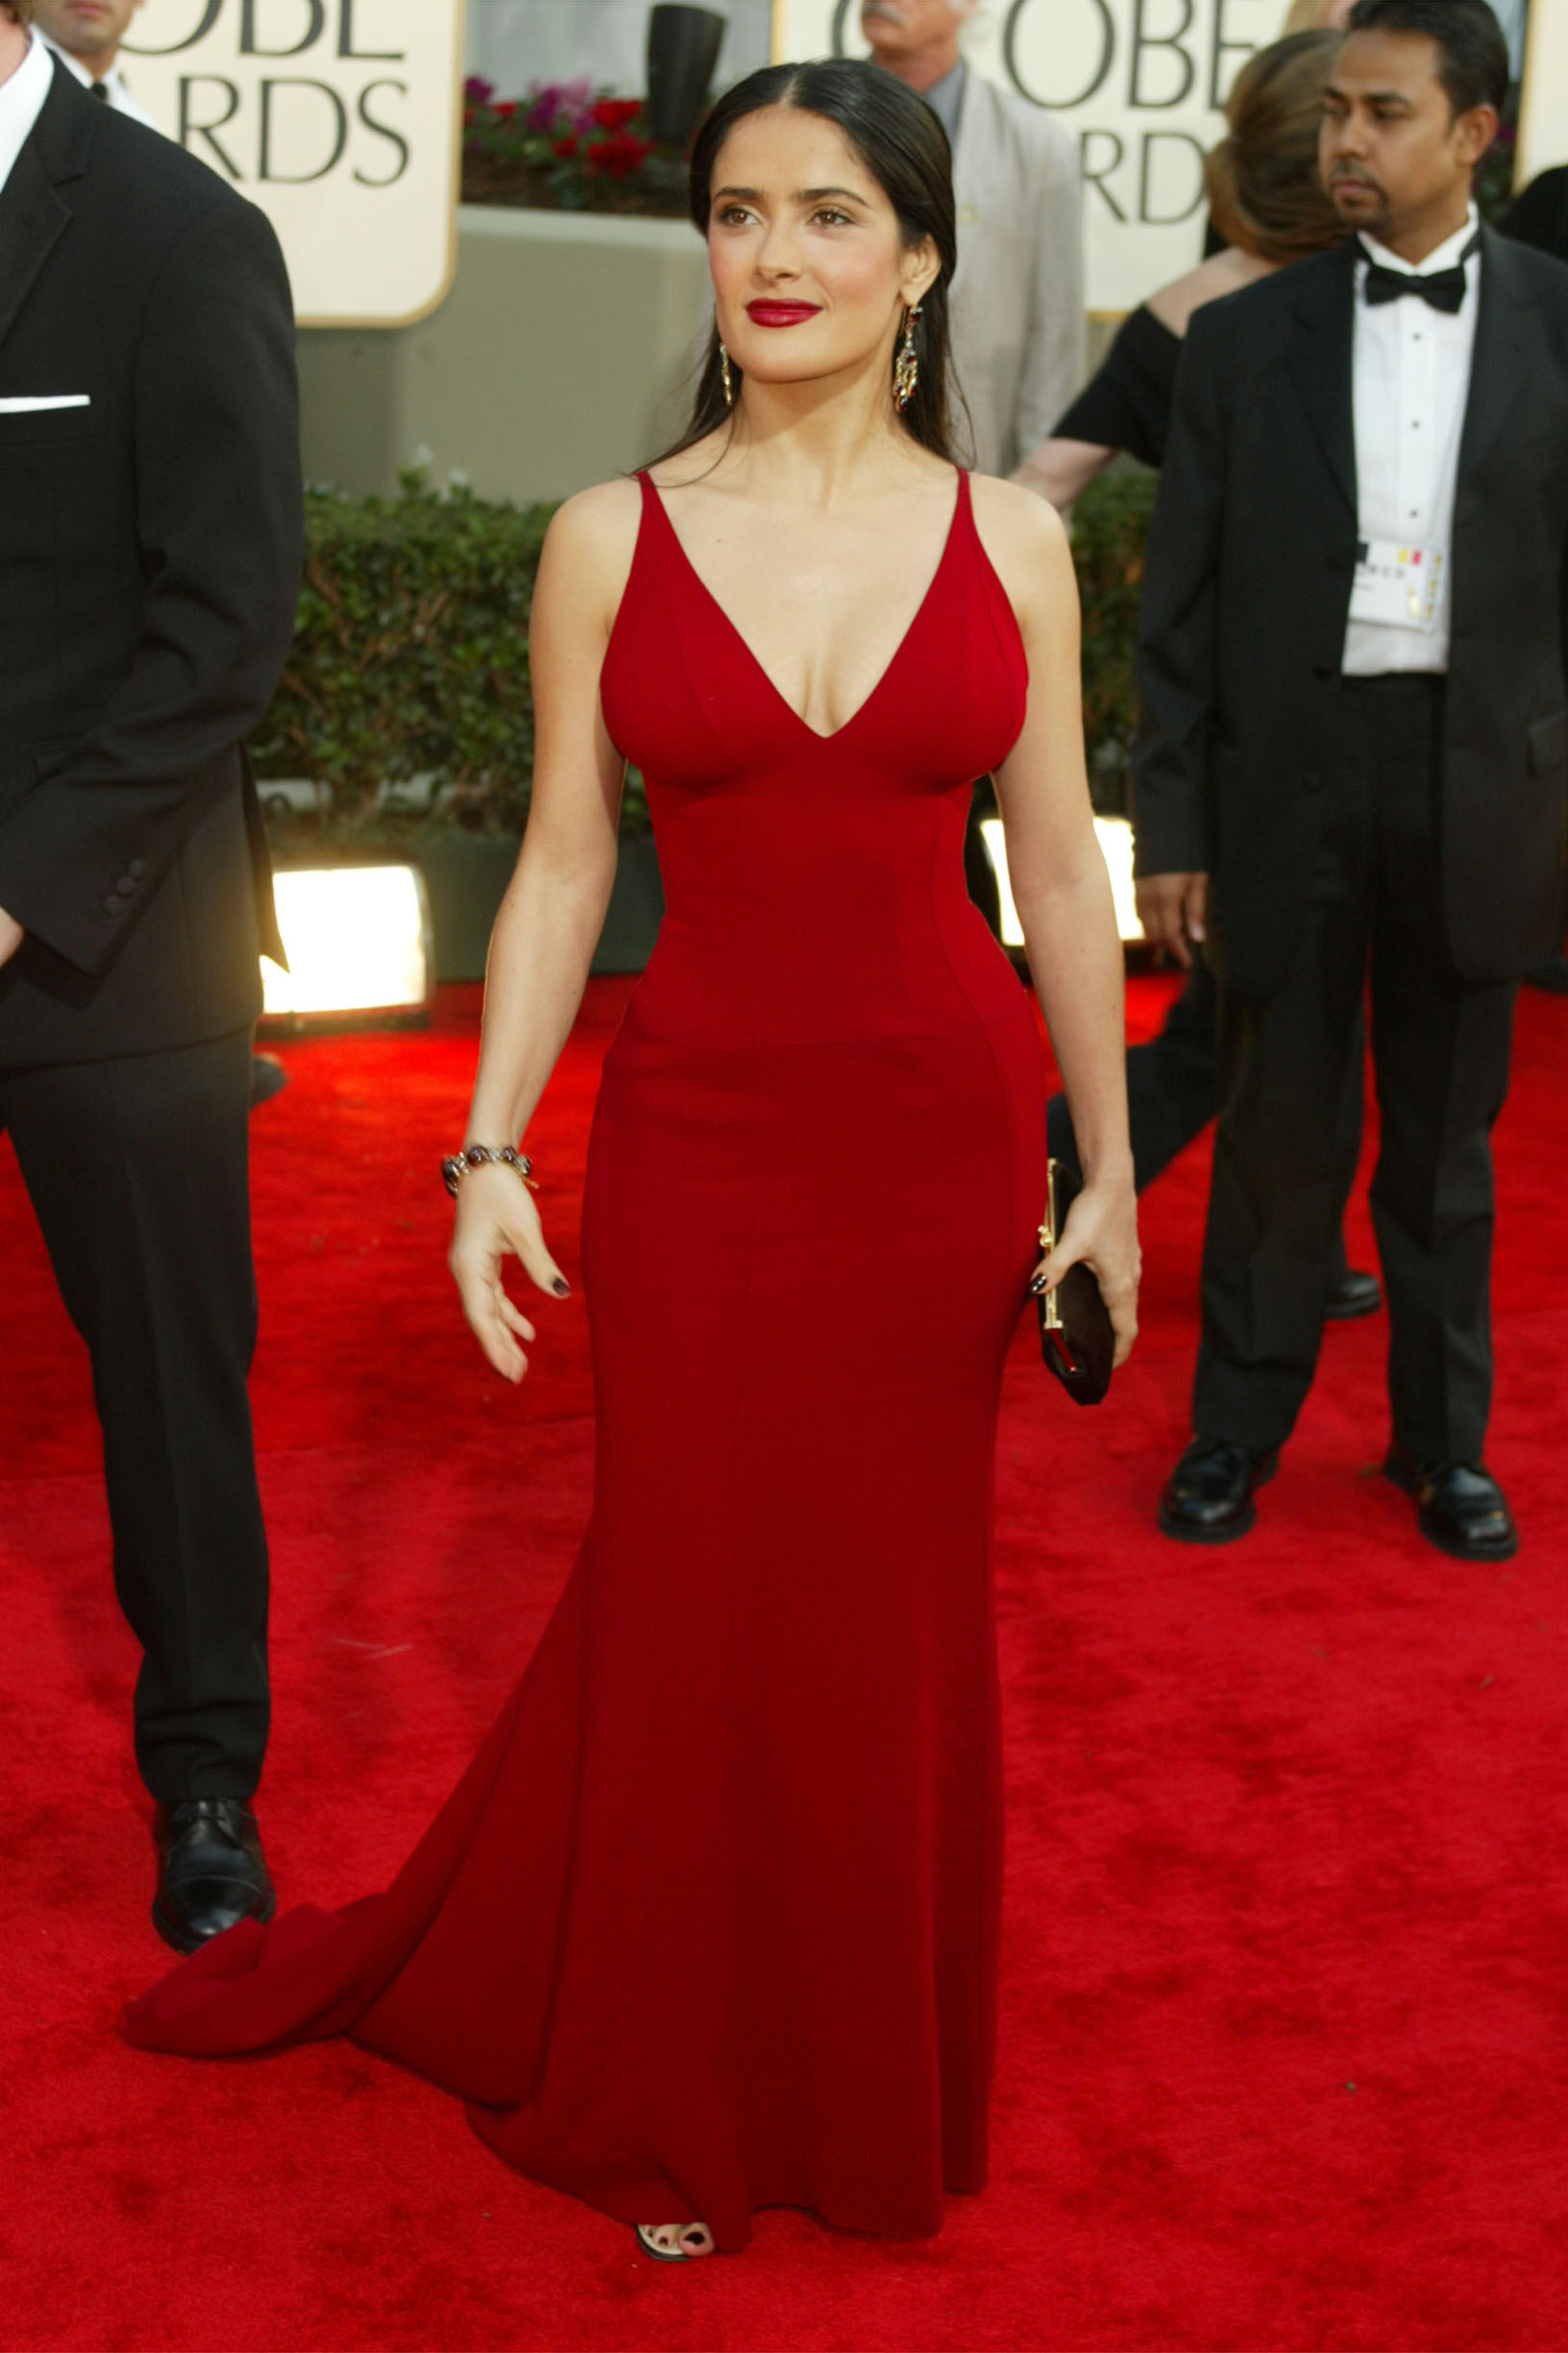 Salma Hayekarrives at the 60th Annual Golden Globe Awards held at the Beverly Hilton Hotel in Los Angeles, CA  on January 19, 2003.  Photo by Kevin Winter/Getty Images.